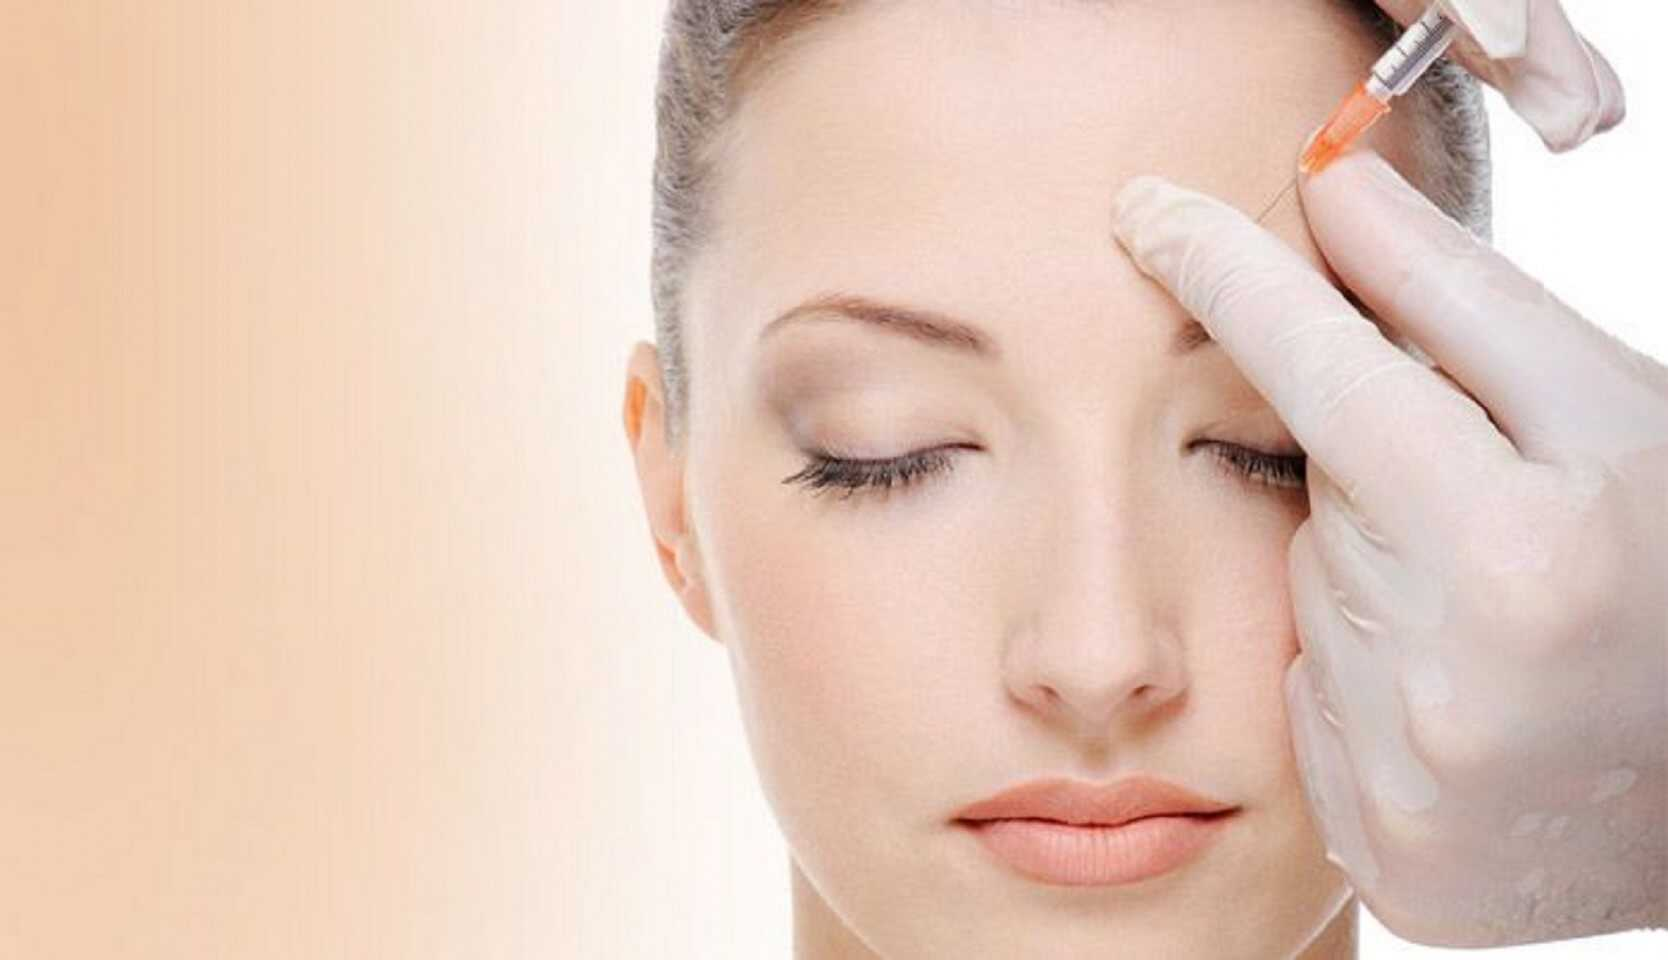 Botox Treatment For Crows Feet Frown Lines Amp Wrinkles In